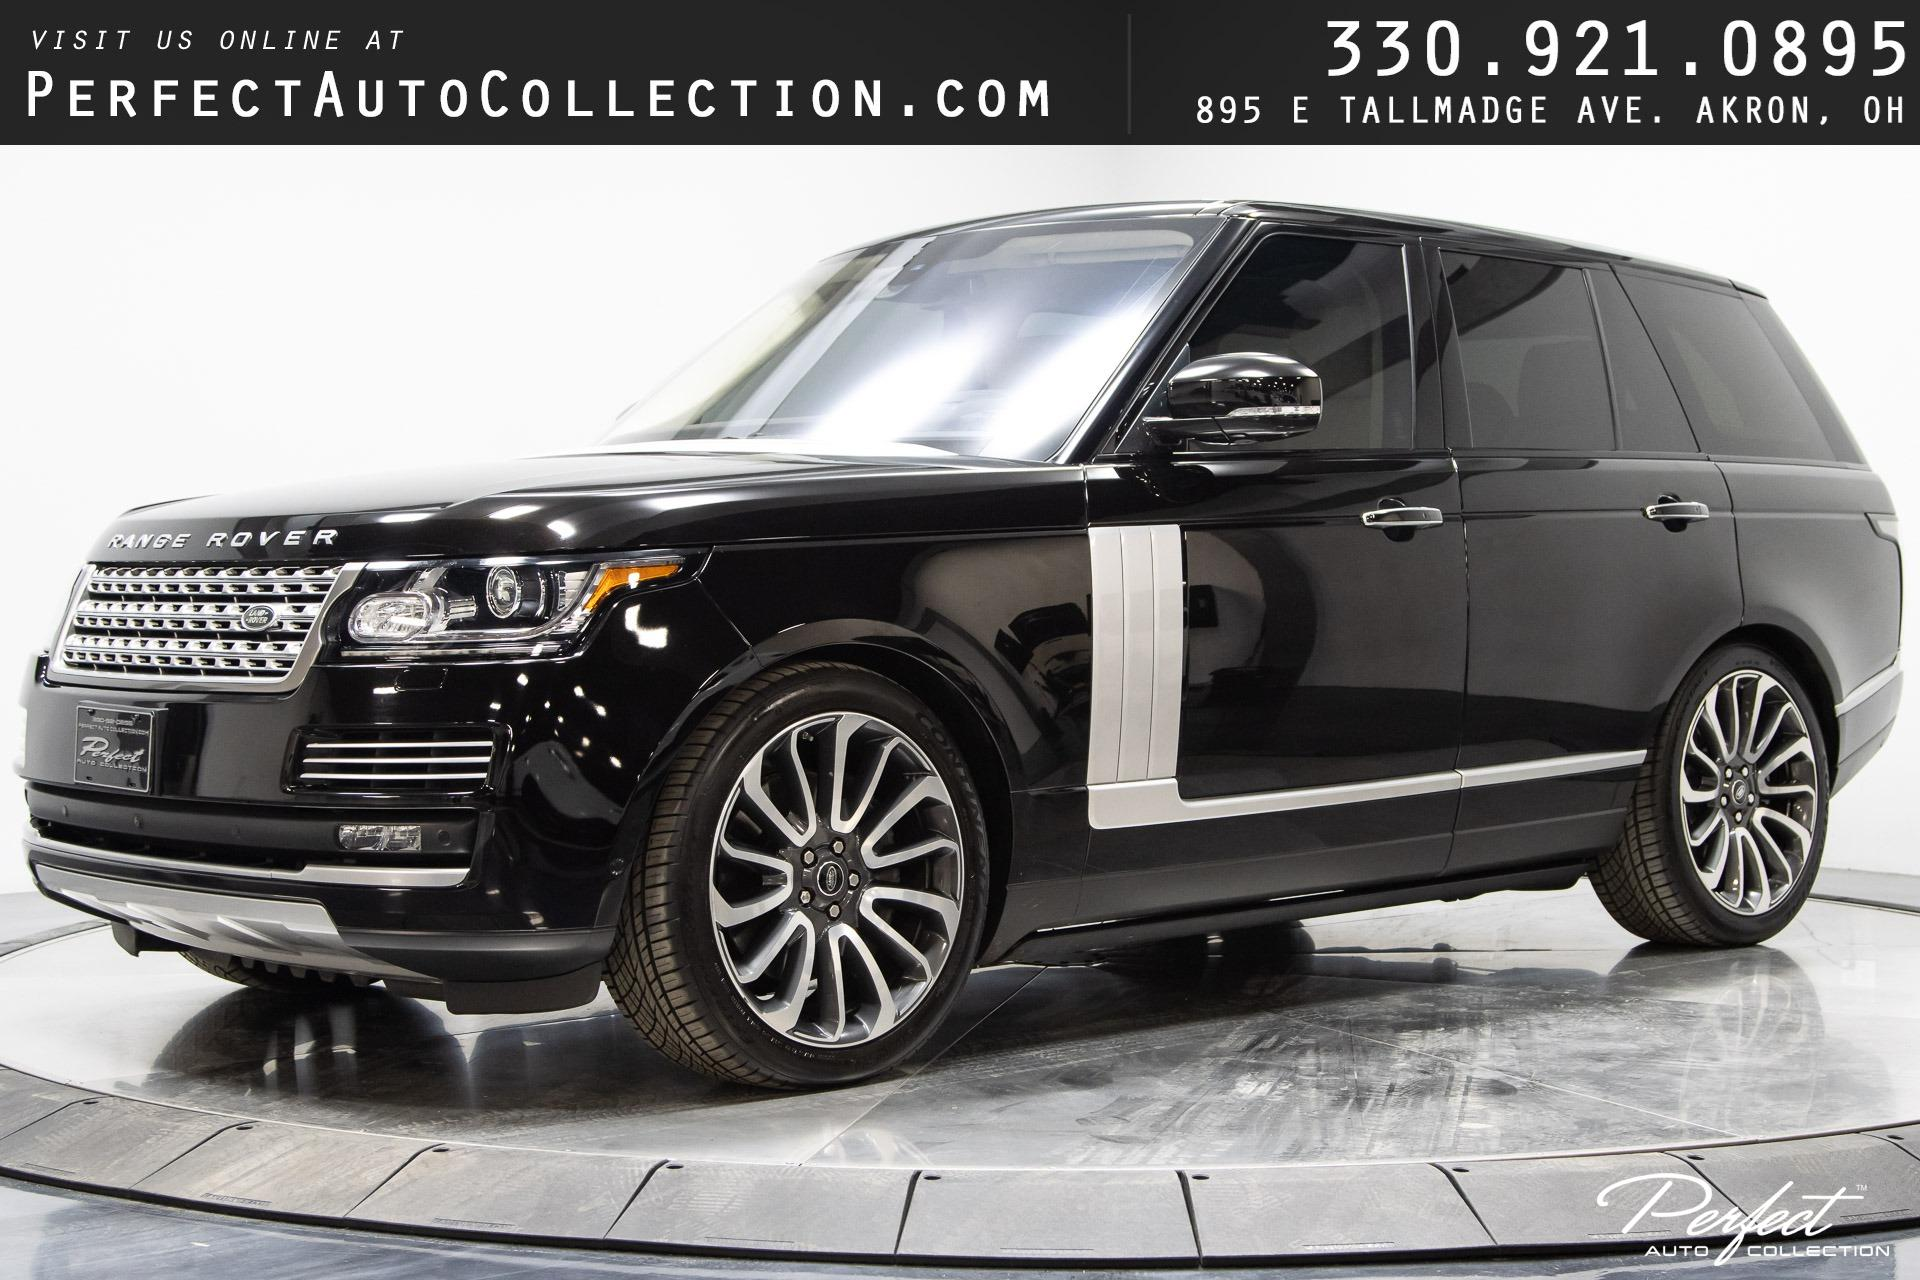 Used 2016 Land Rover Range Rover Autobiography for sale $68,995 at Perfect Auto Collection in Akron OH 44310 1